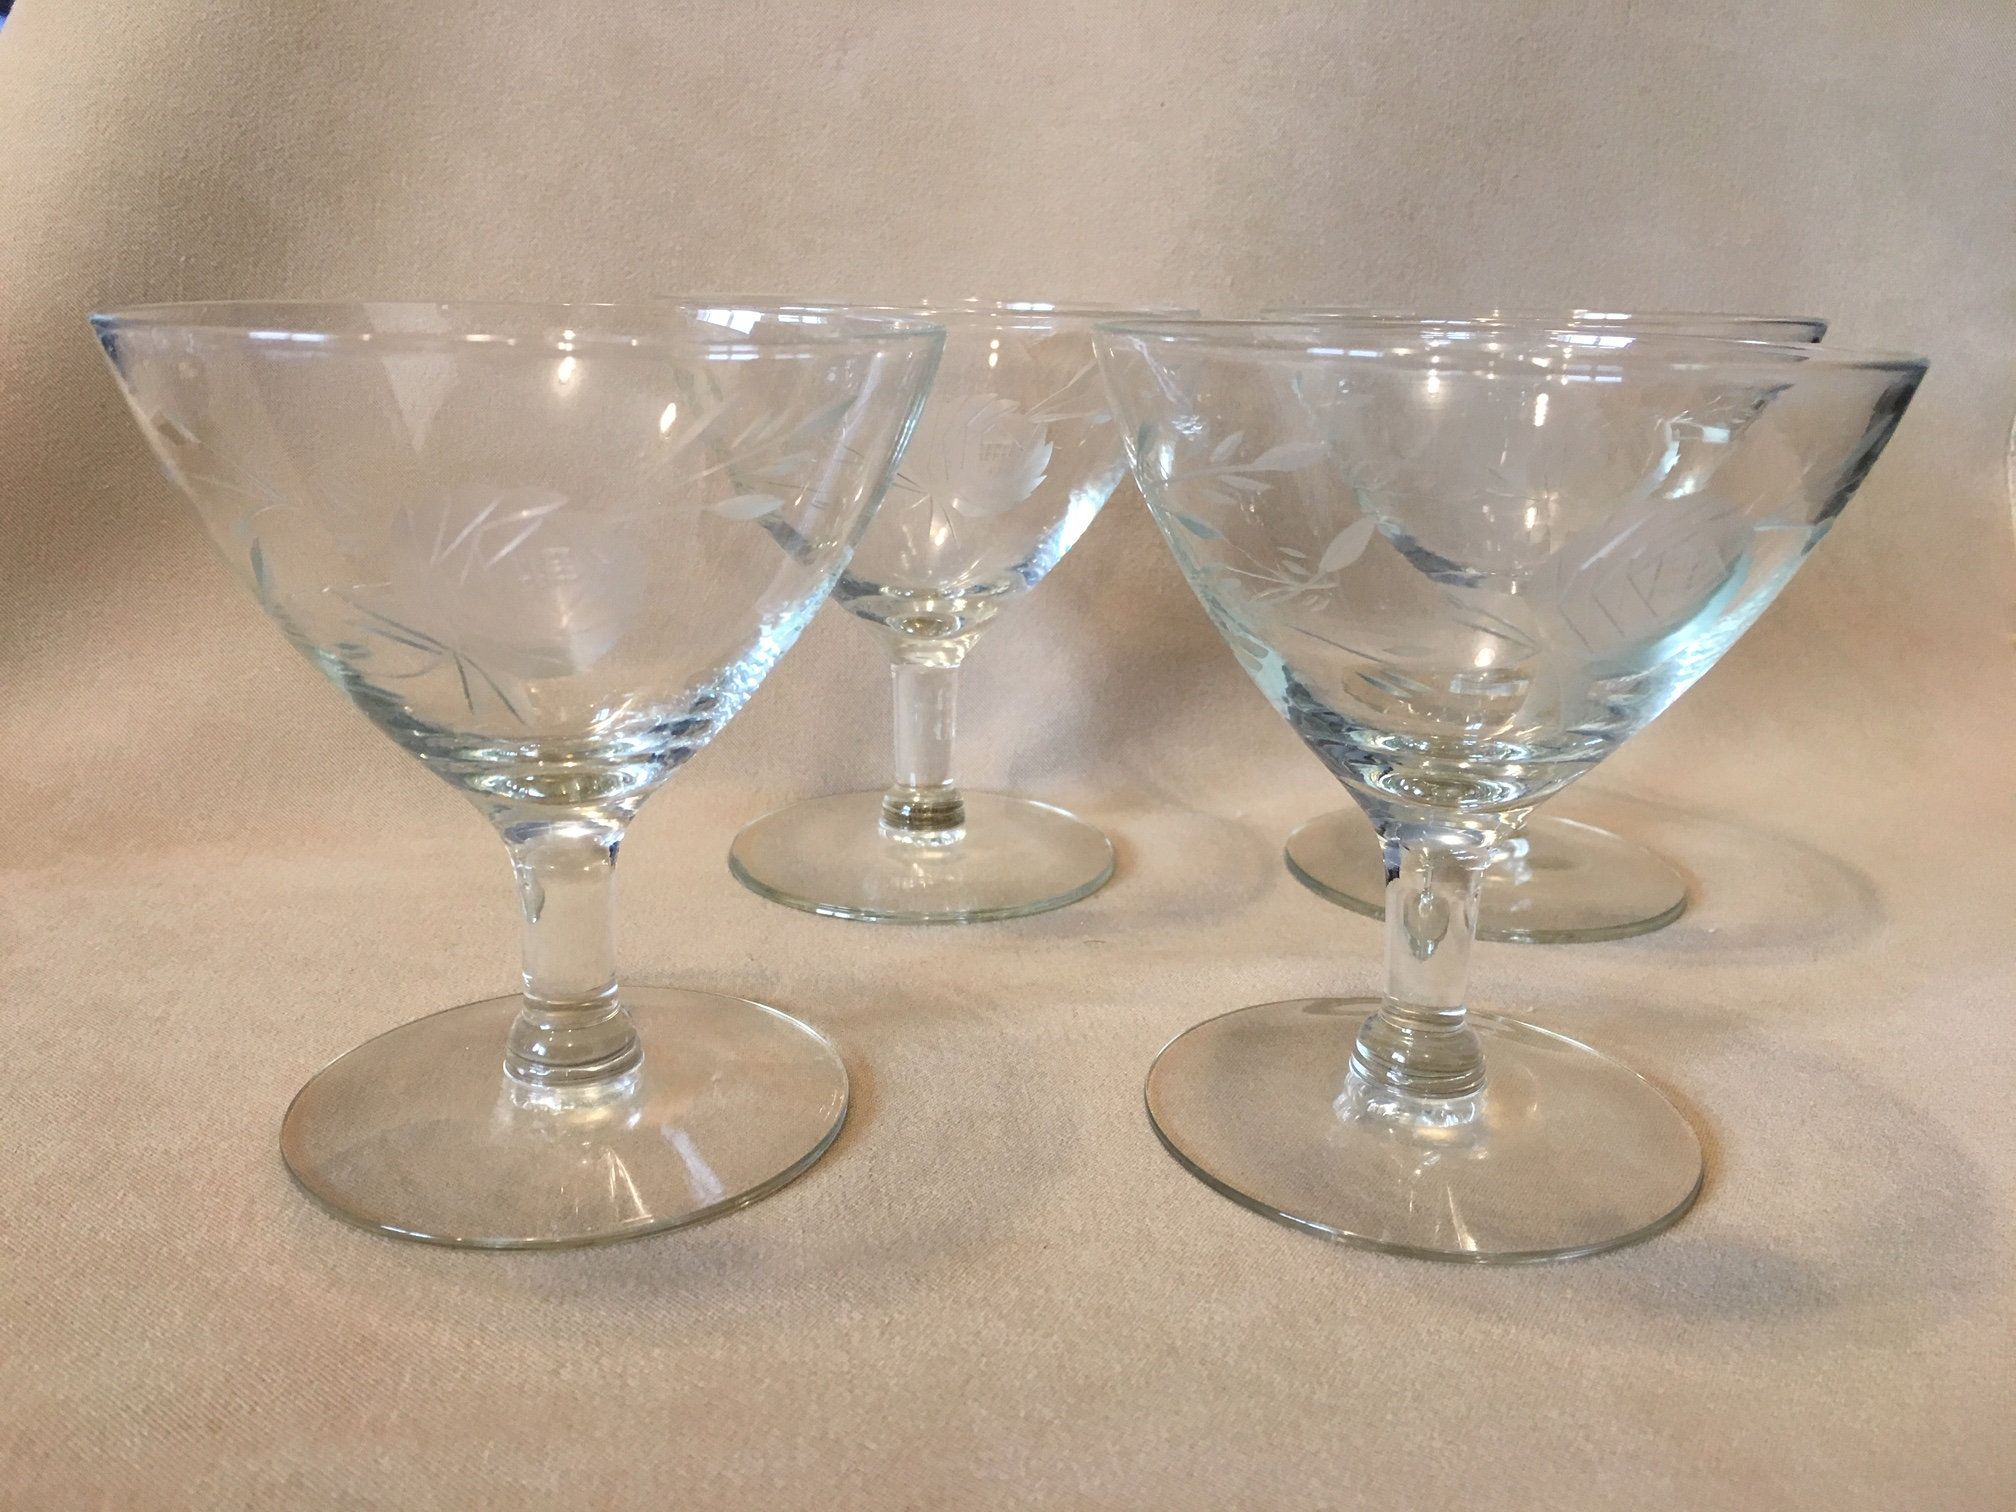 Vintage Wine Glasses Rose Pattern Smooth Stem By Javit Badash Etsy Vintage Wine Glasses Short Stem Wine Glasses Vintage Wine